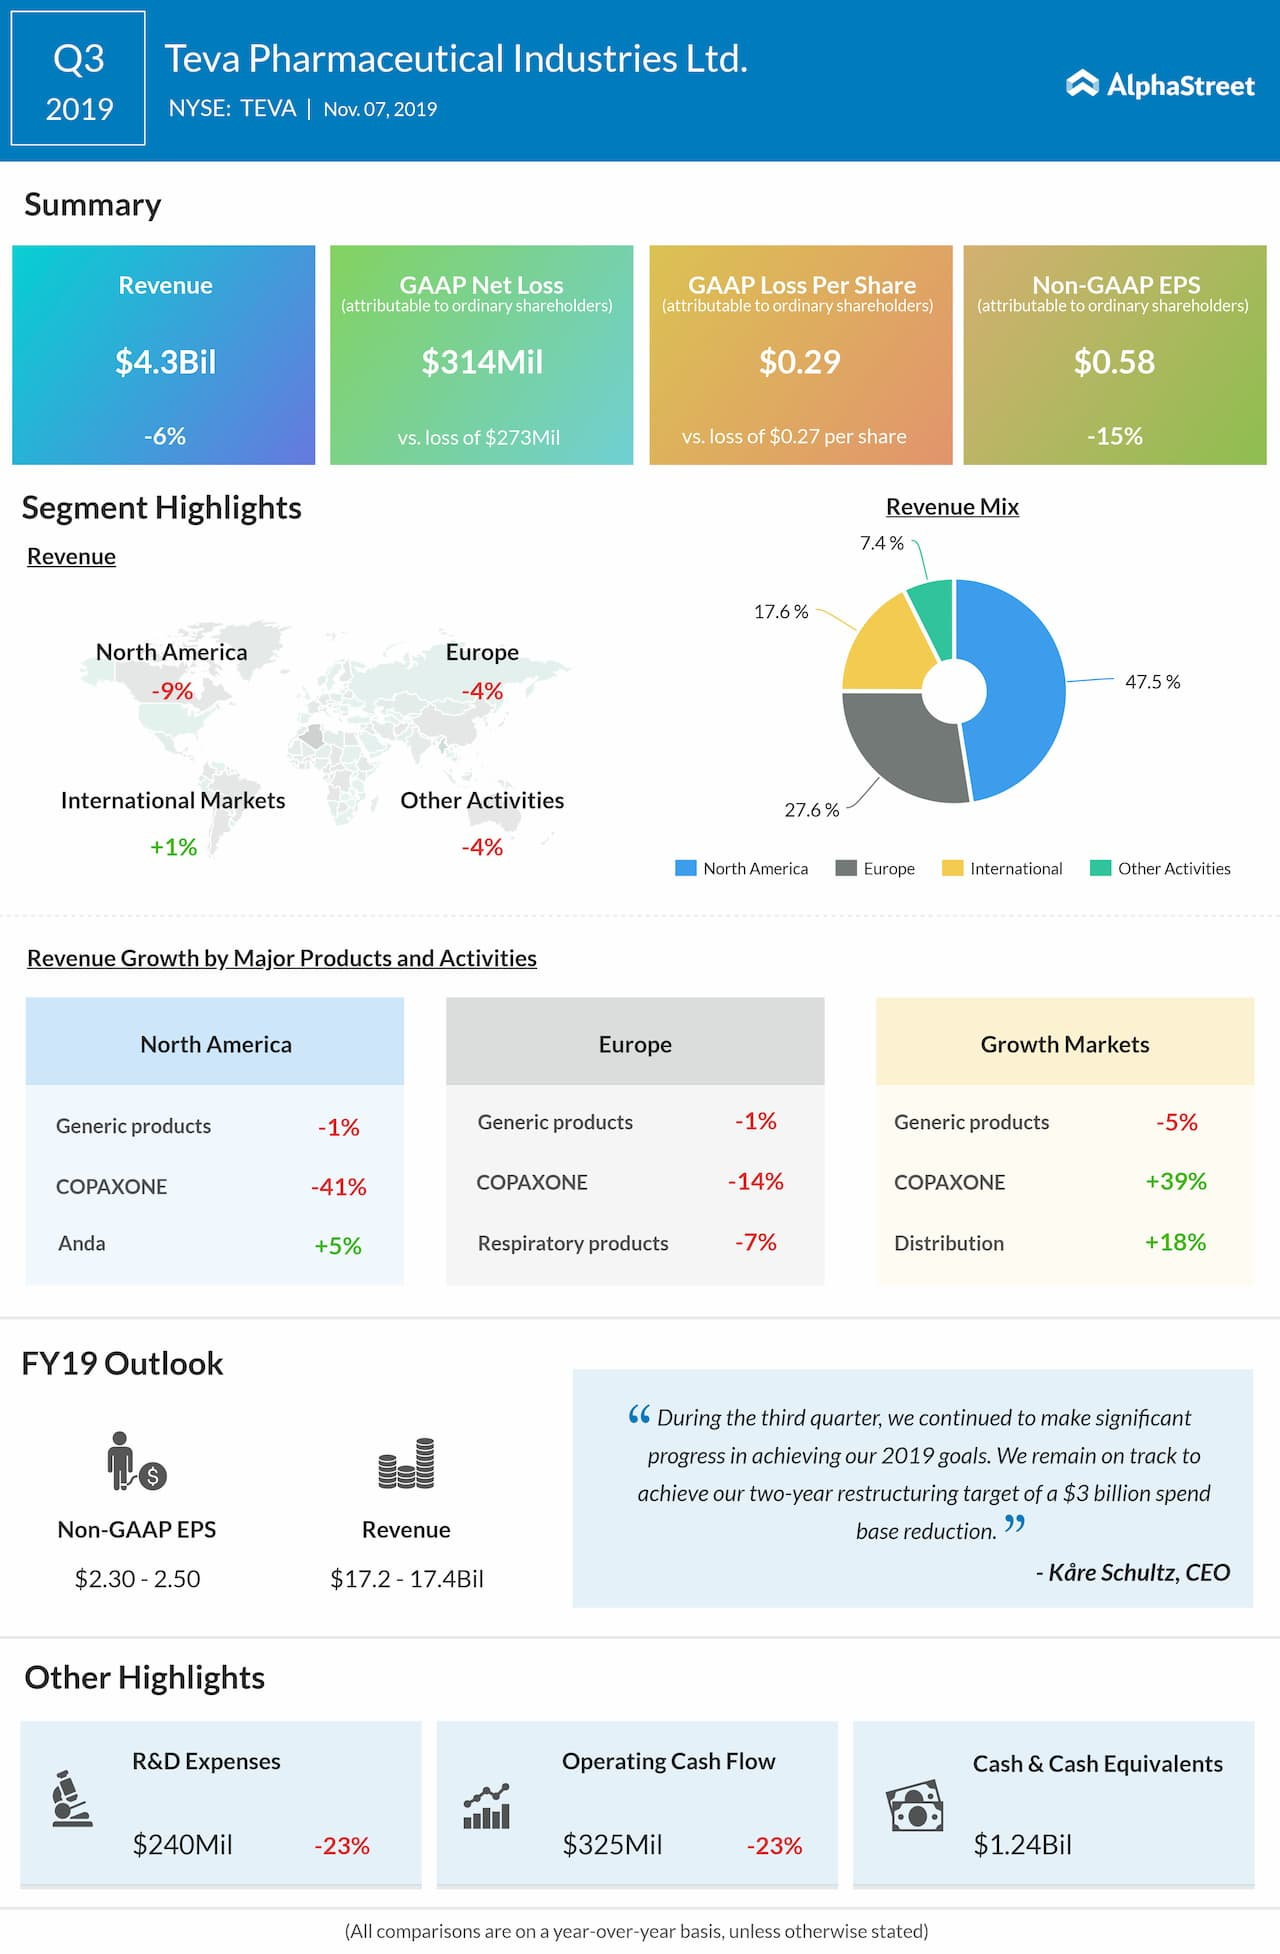 Teva Pharmaceutical (TEVA) Q3 2019 Earnings Review